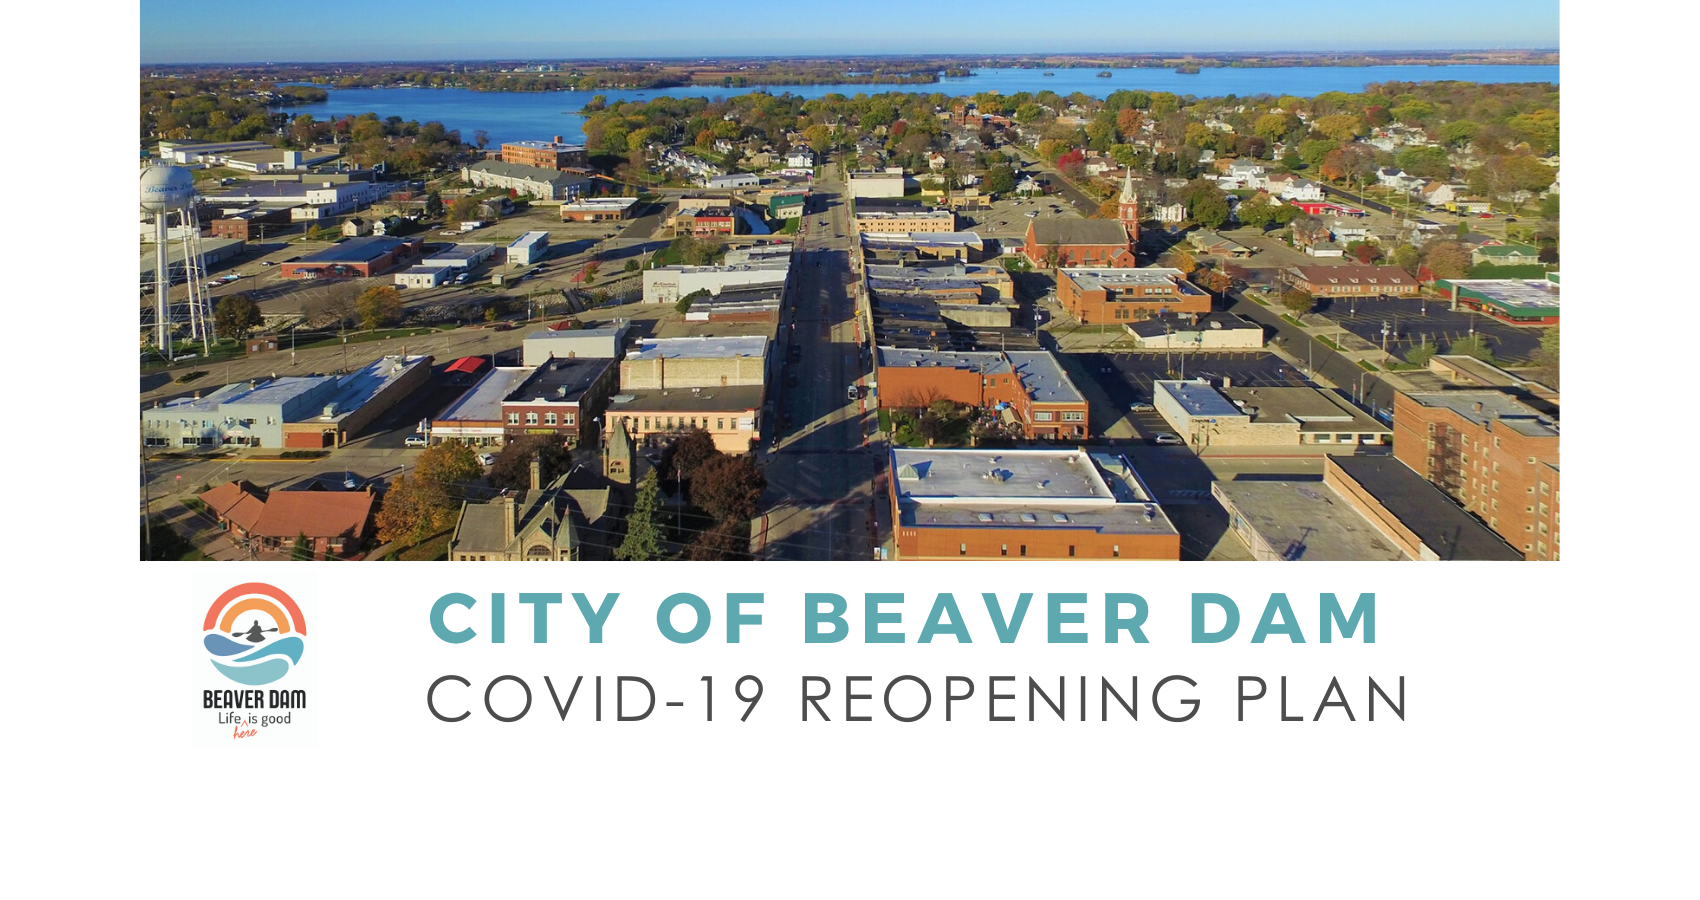 City of Beaver Dam COVID-19 Reopening Plan